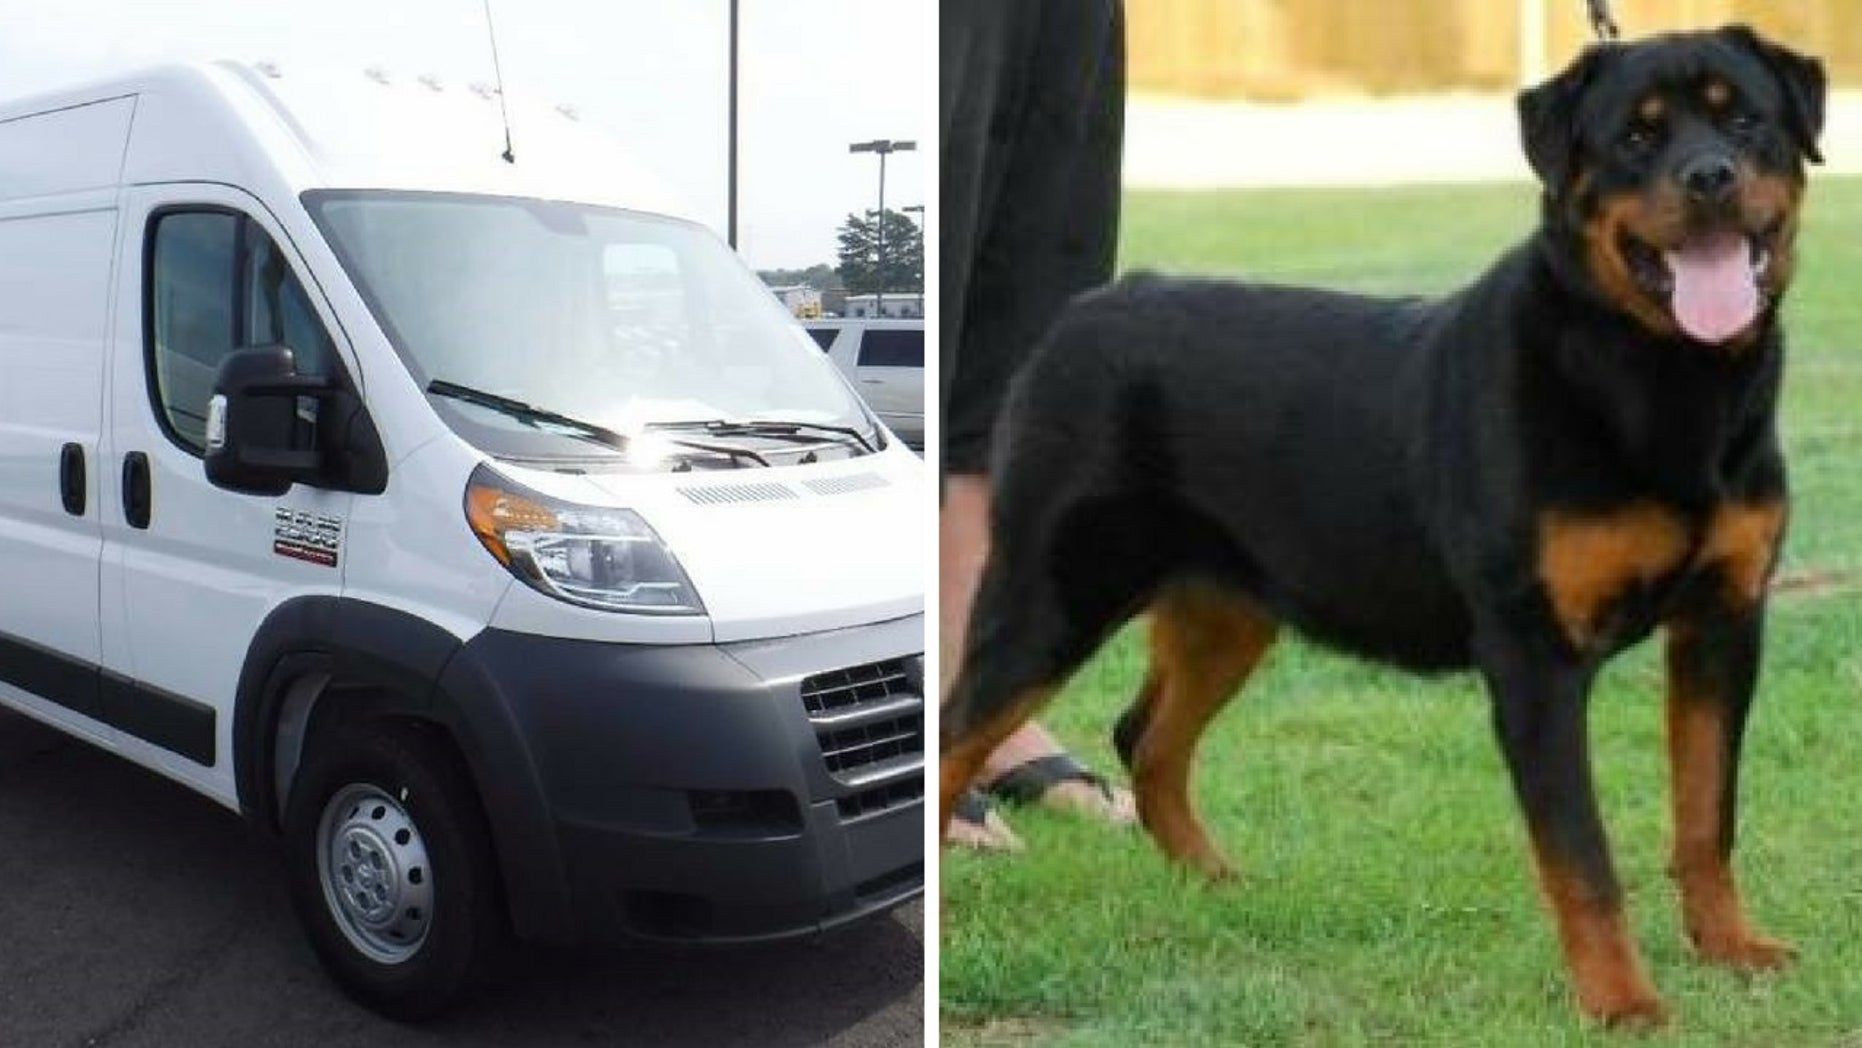 Authorities on Thursday located a stolen van with more than a dozen show dogs inside.